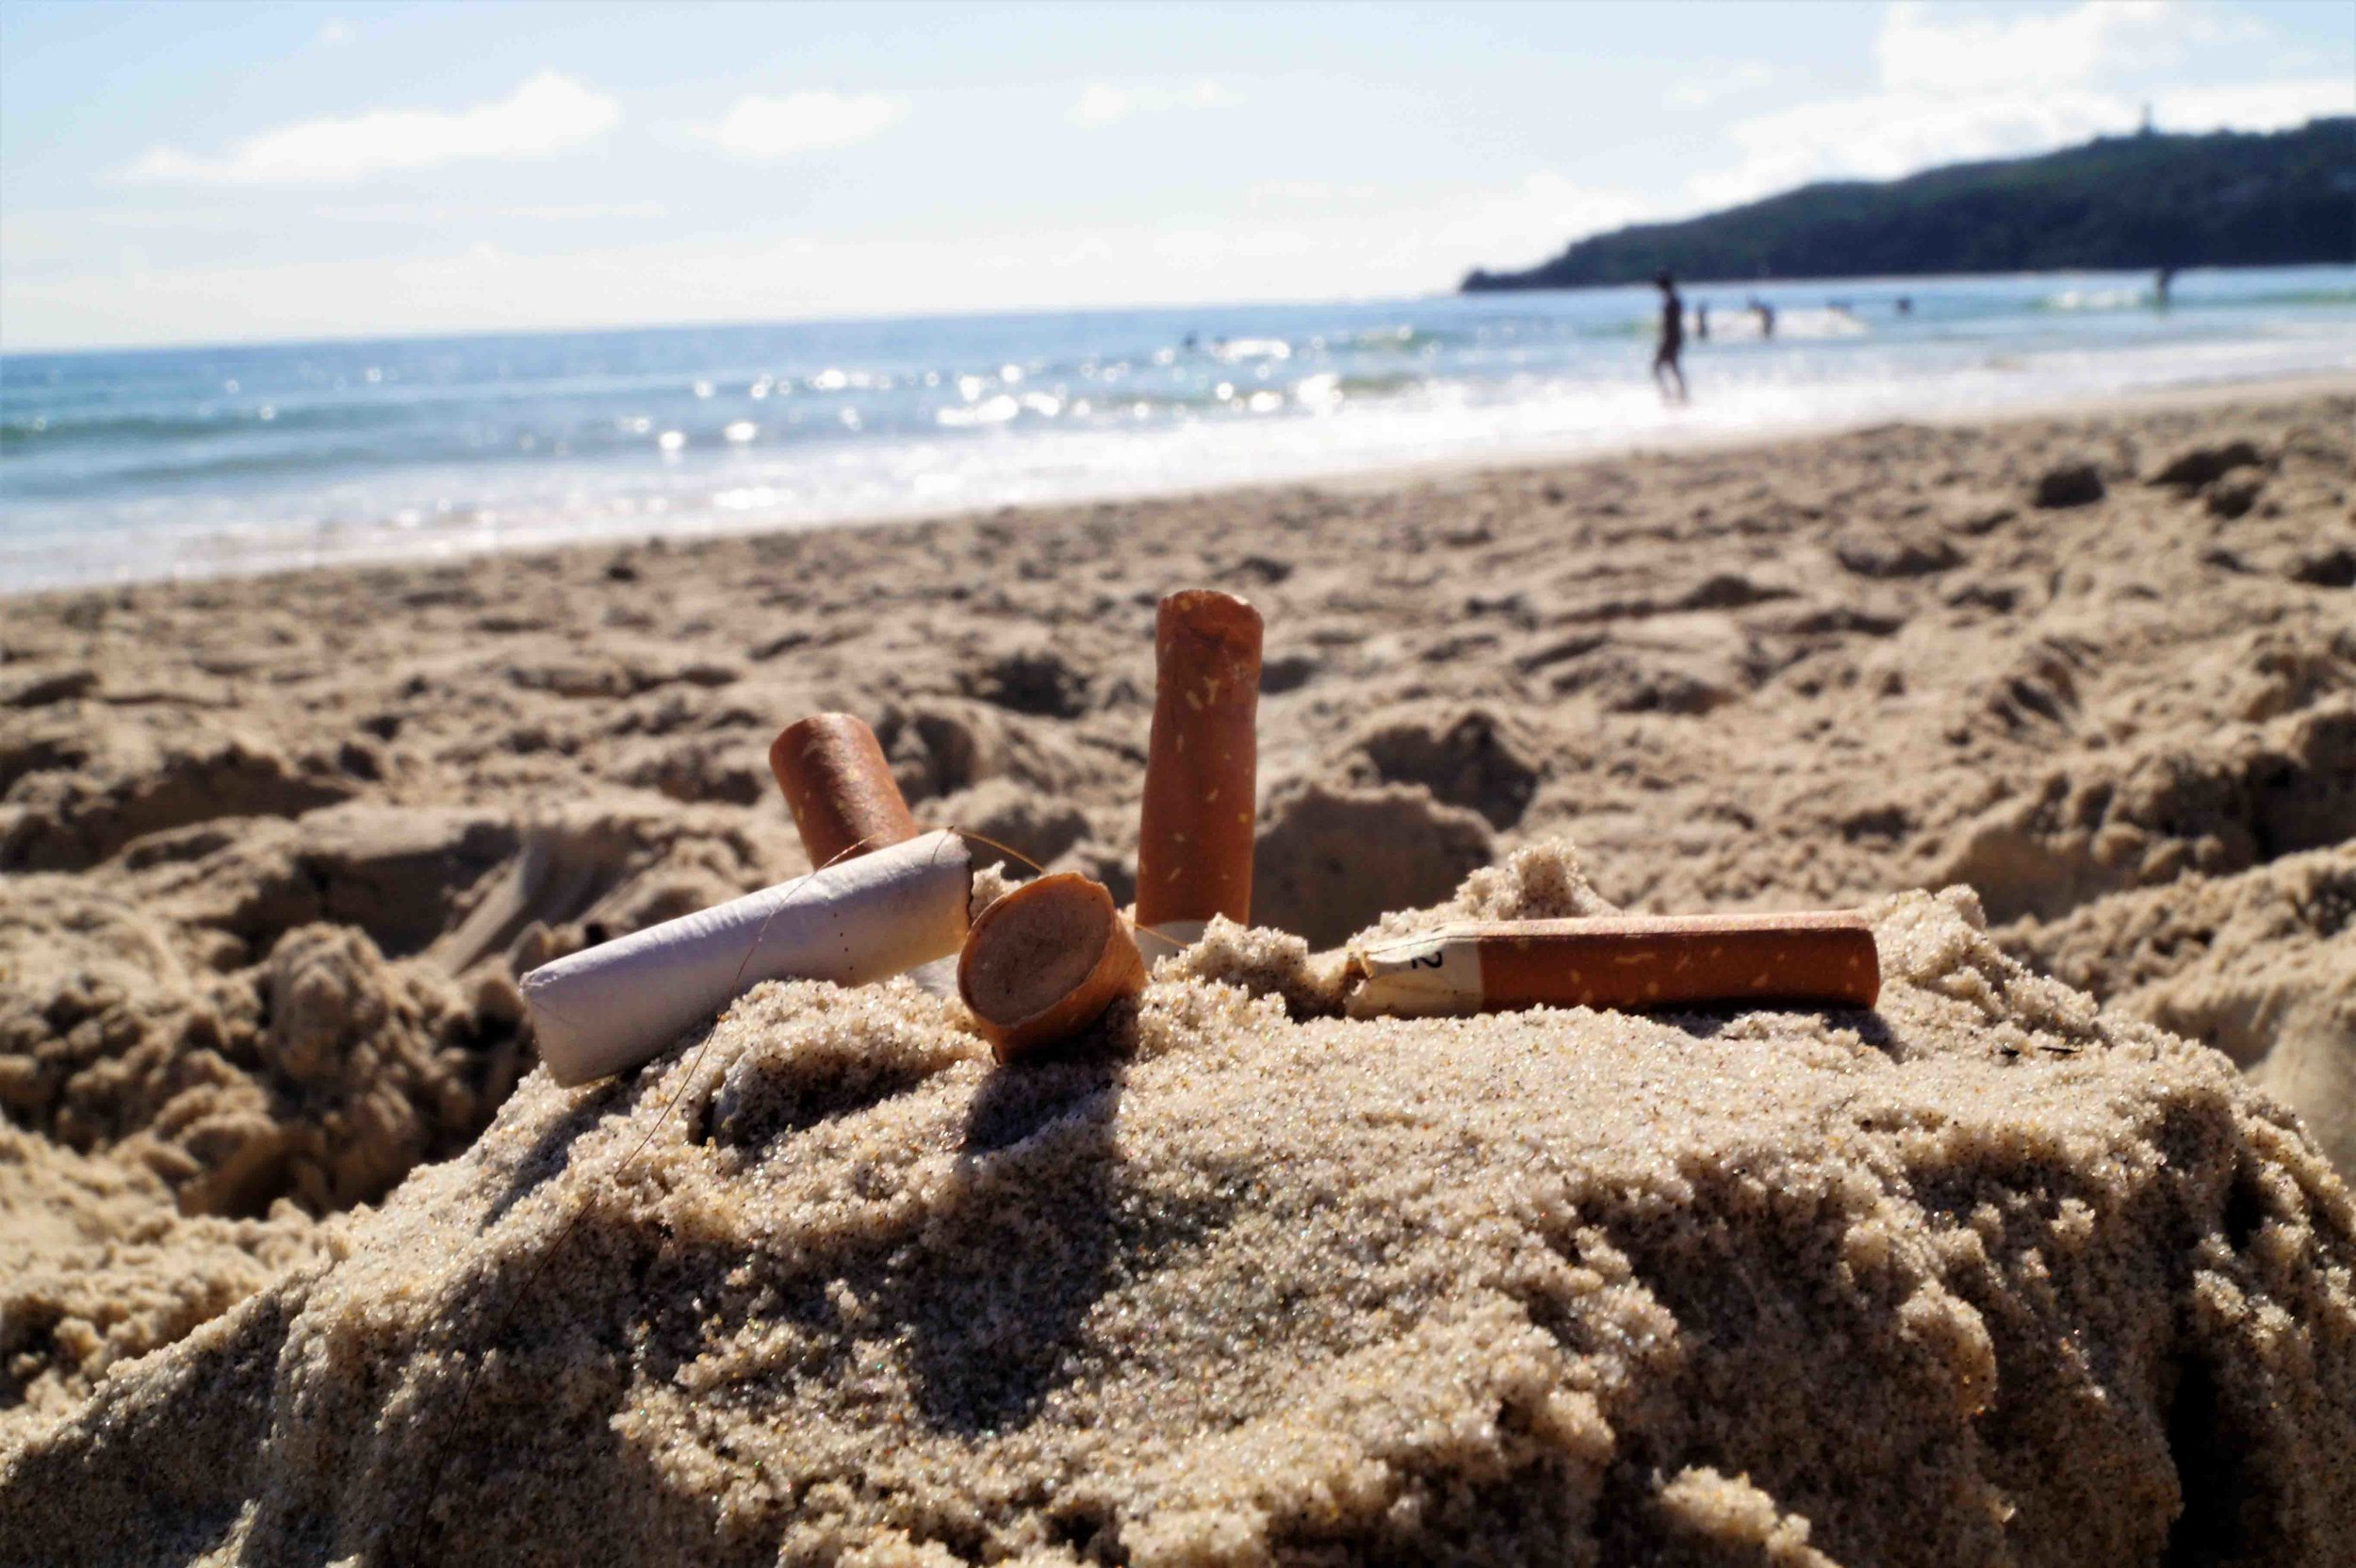 Cigarette butt litter has made up over 80% of our litter survey findings on Main Beach in Byron Bay over the past 6 years.